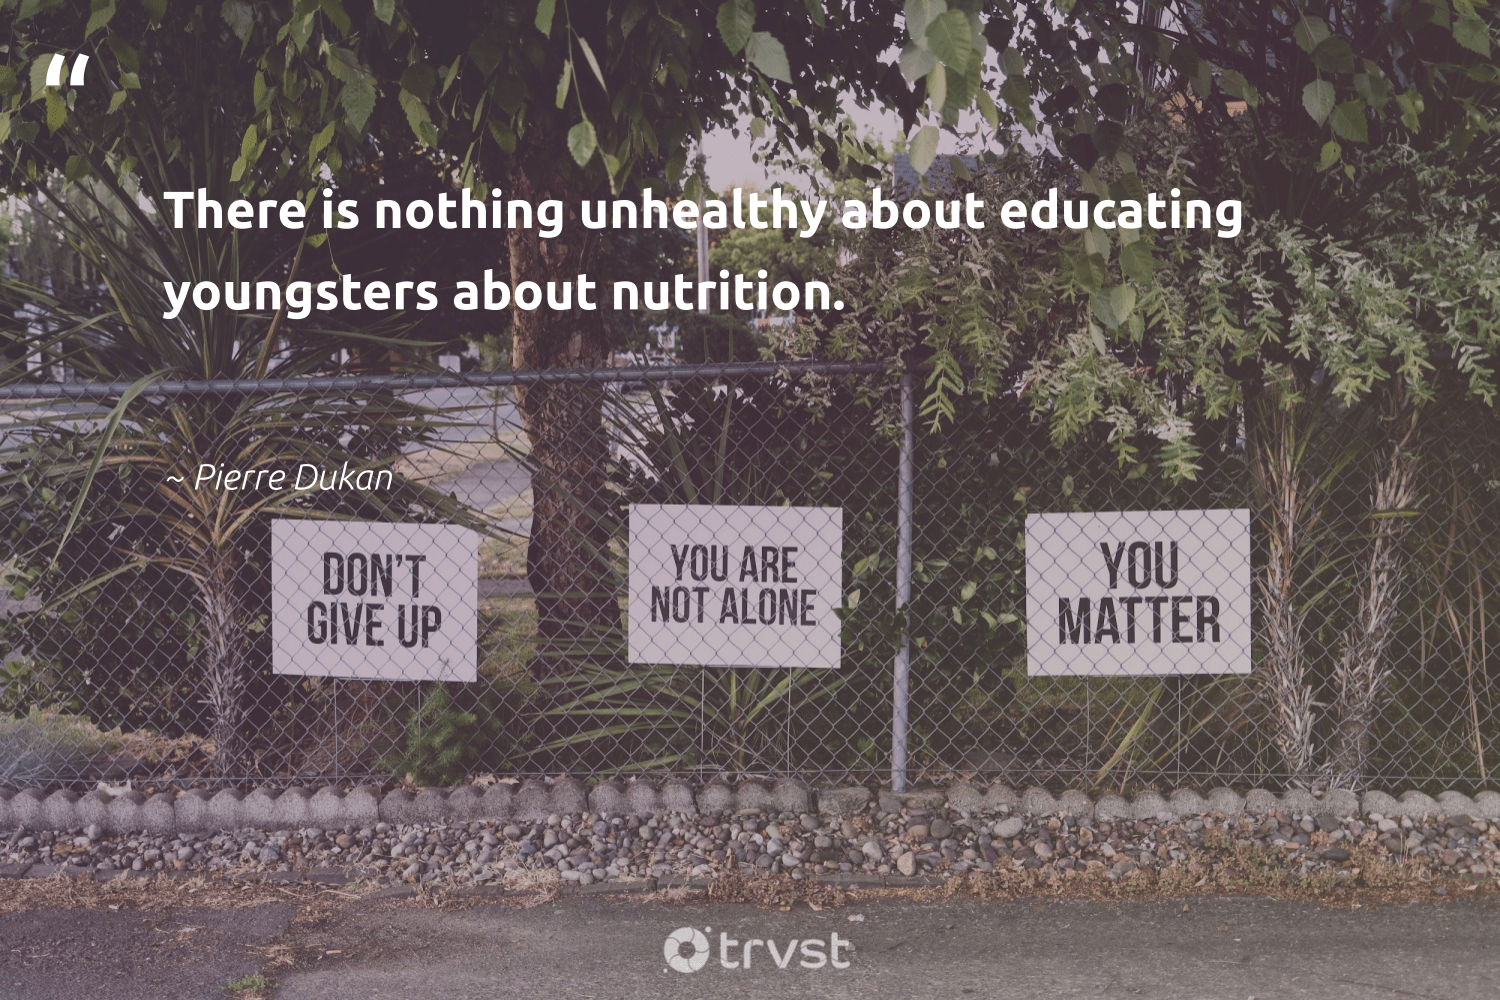 """There is nothing unhealthy about educating youngsters about nutrition.""  - Pierre Dukan #trvst #quotes #eatclean #nutrition #healthylifestyle #changemakers #health #changetheworld #healthyfood #begreat #mindset #dogood"